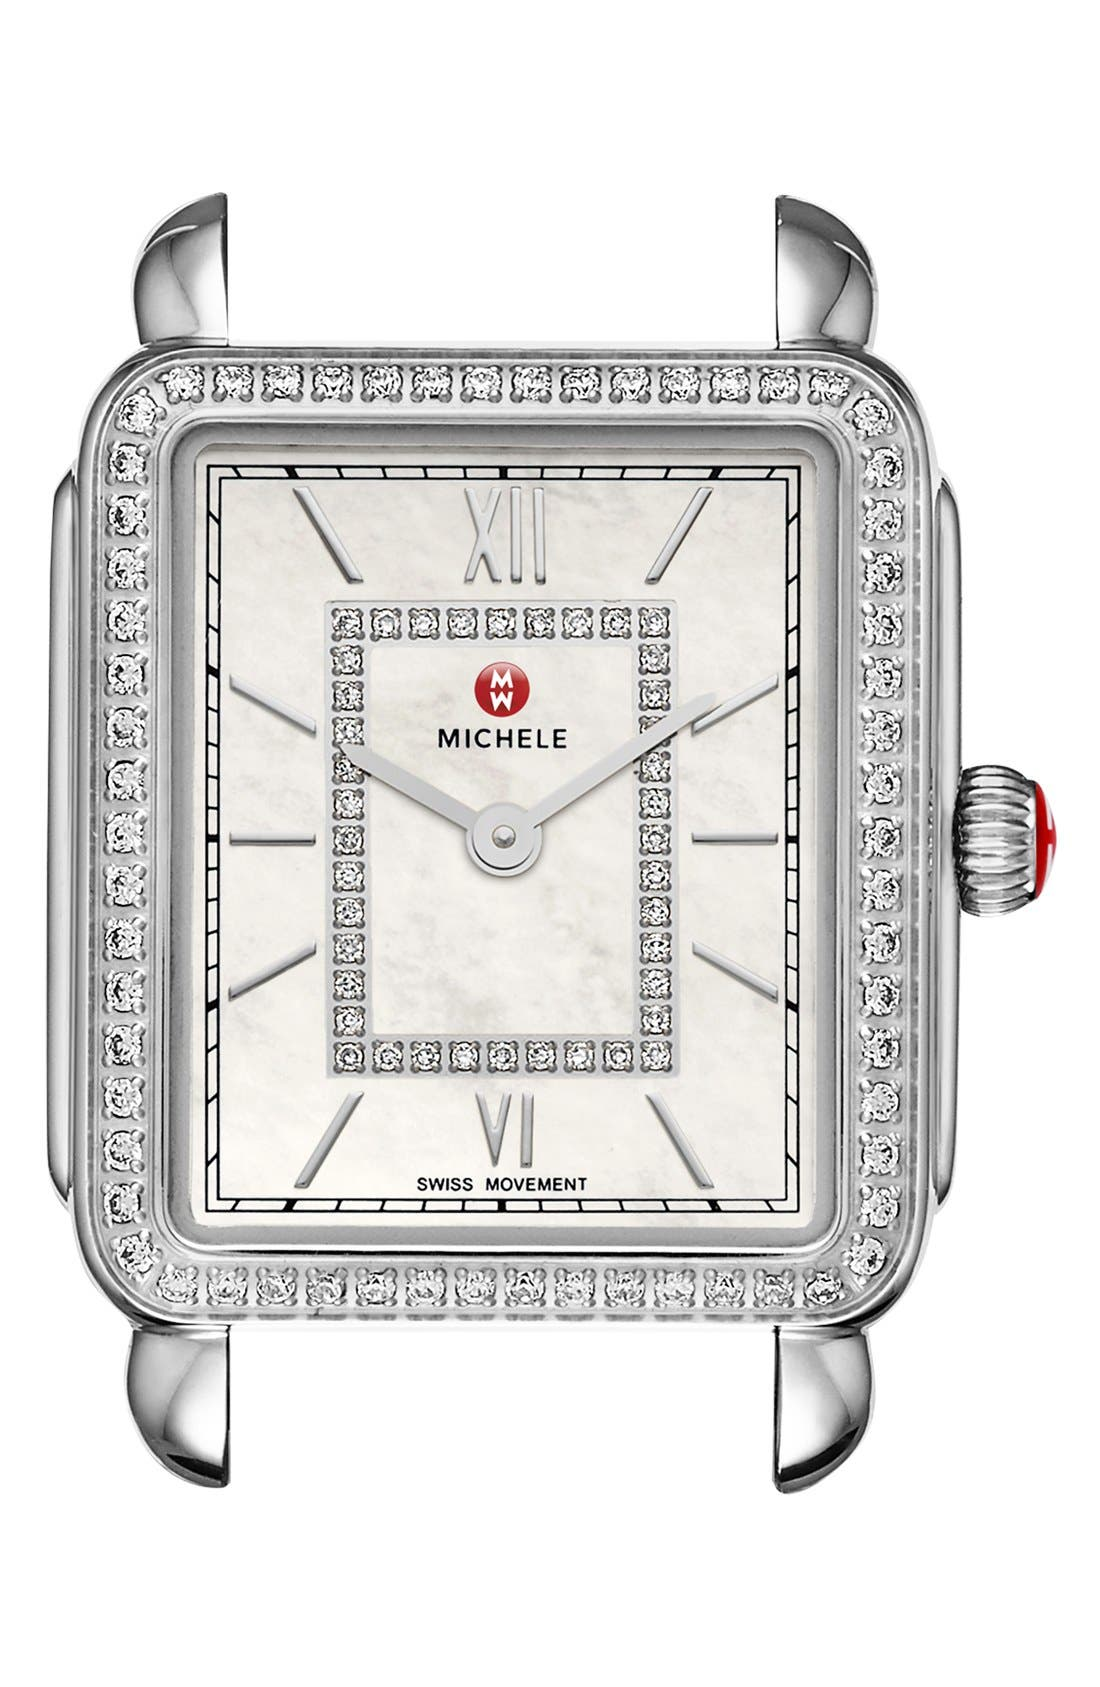 Main Image - MICHELE Deco II Diamond Dial Watch Case, 26mm x 28mm (Nordstrom Exclusive)